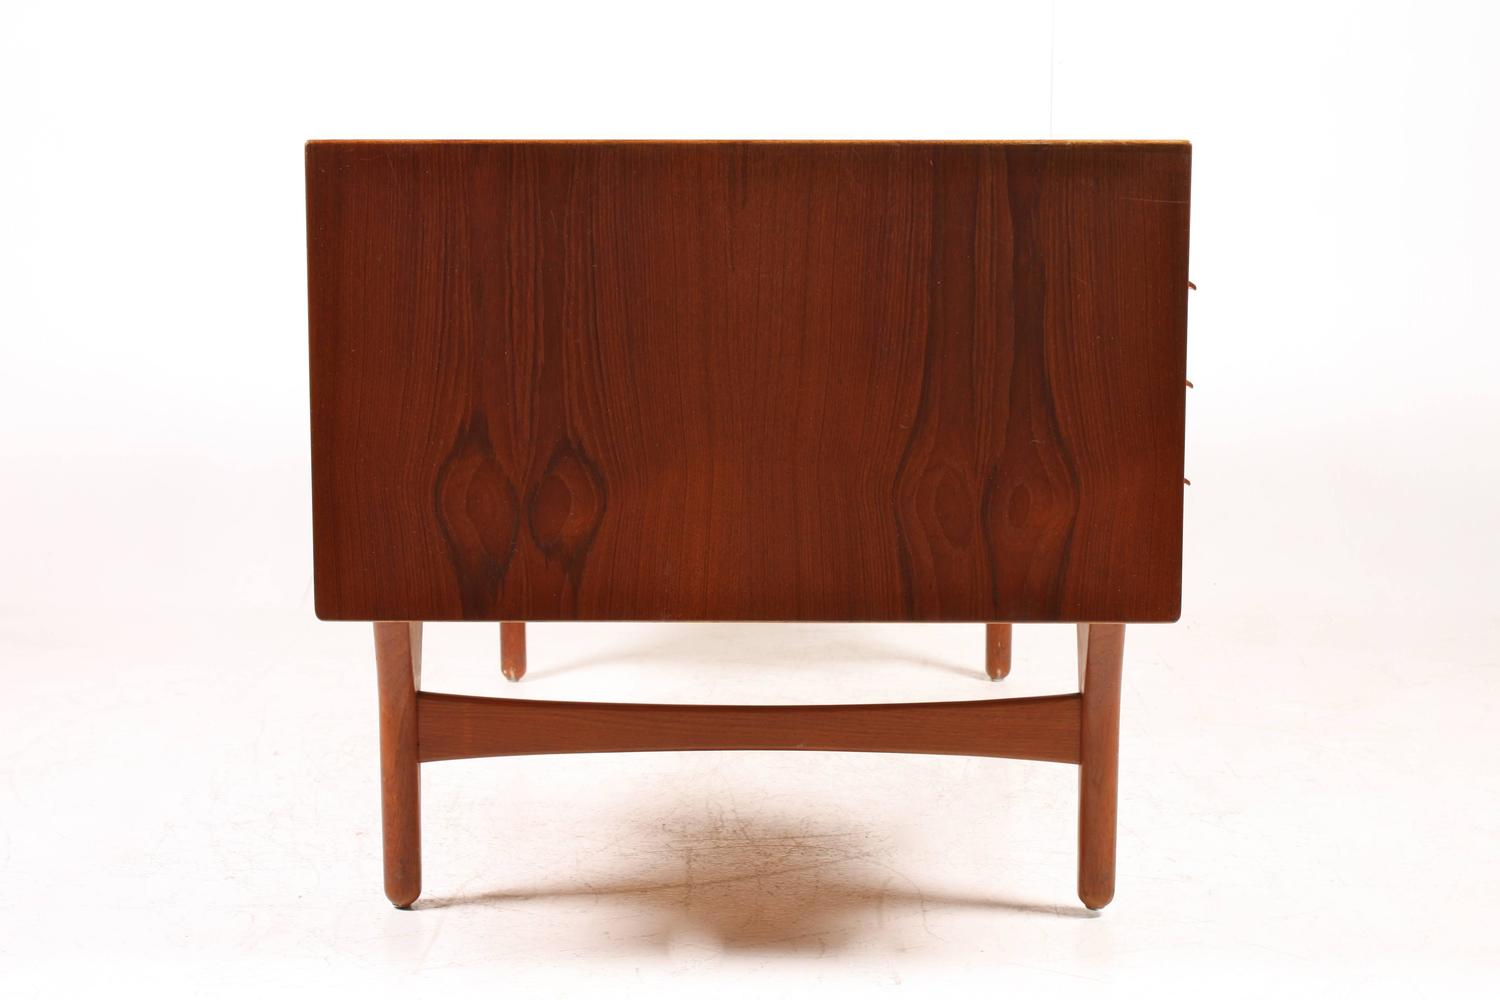 #652814 Free Standing Teak Desk 1960s For Sale At 1stdibs with 1500x1000 px of Highly Rated Standing Writing Desk 10001500 picture/photo @ avoidforclosure.info